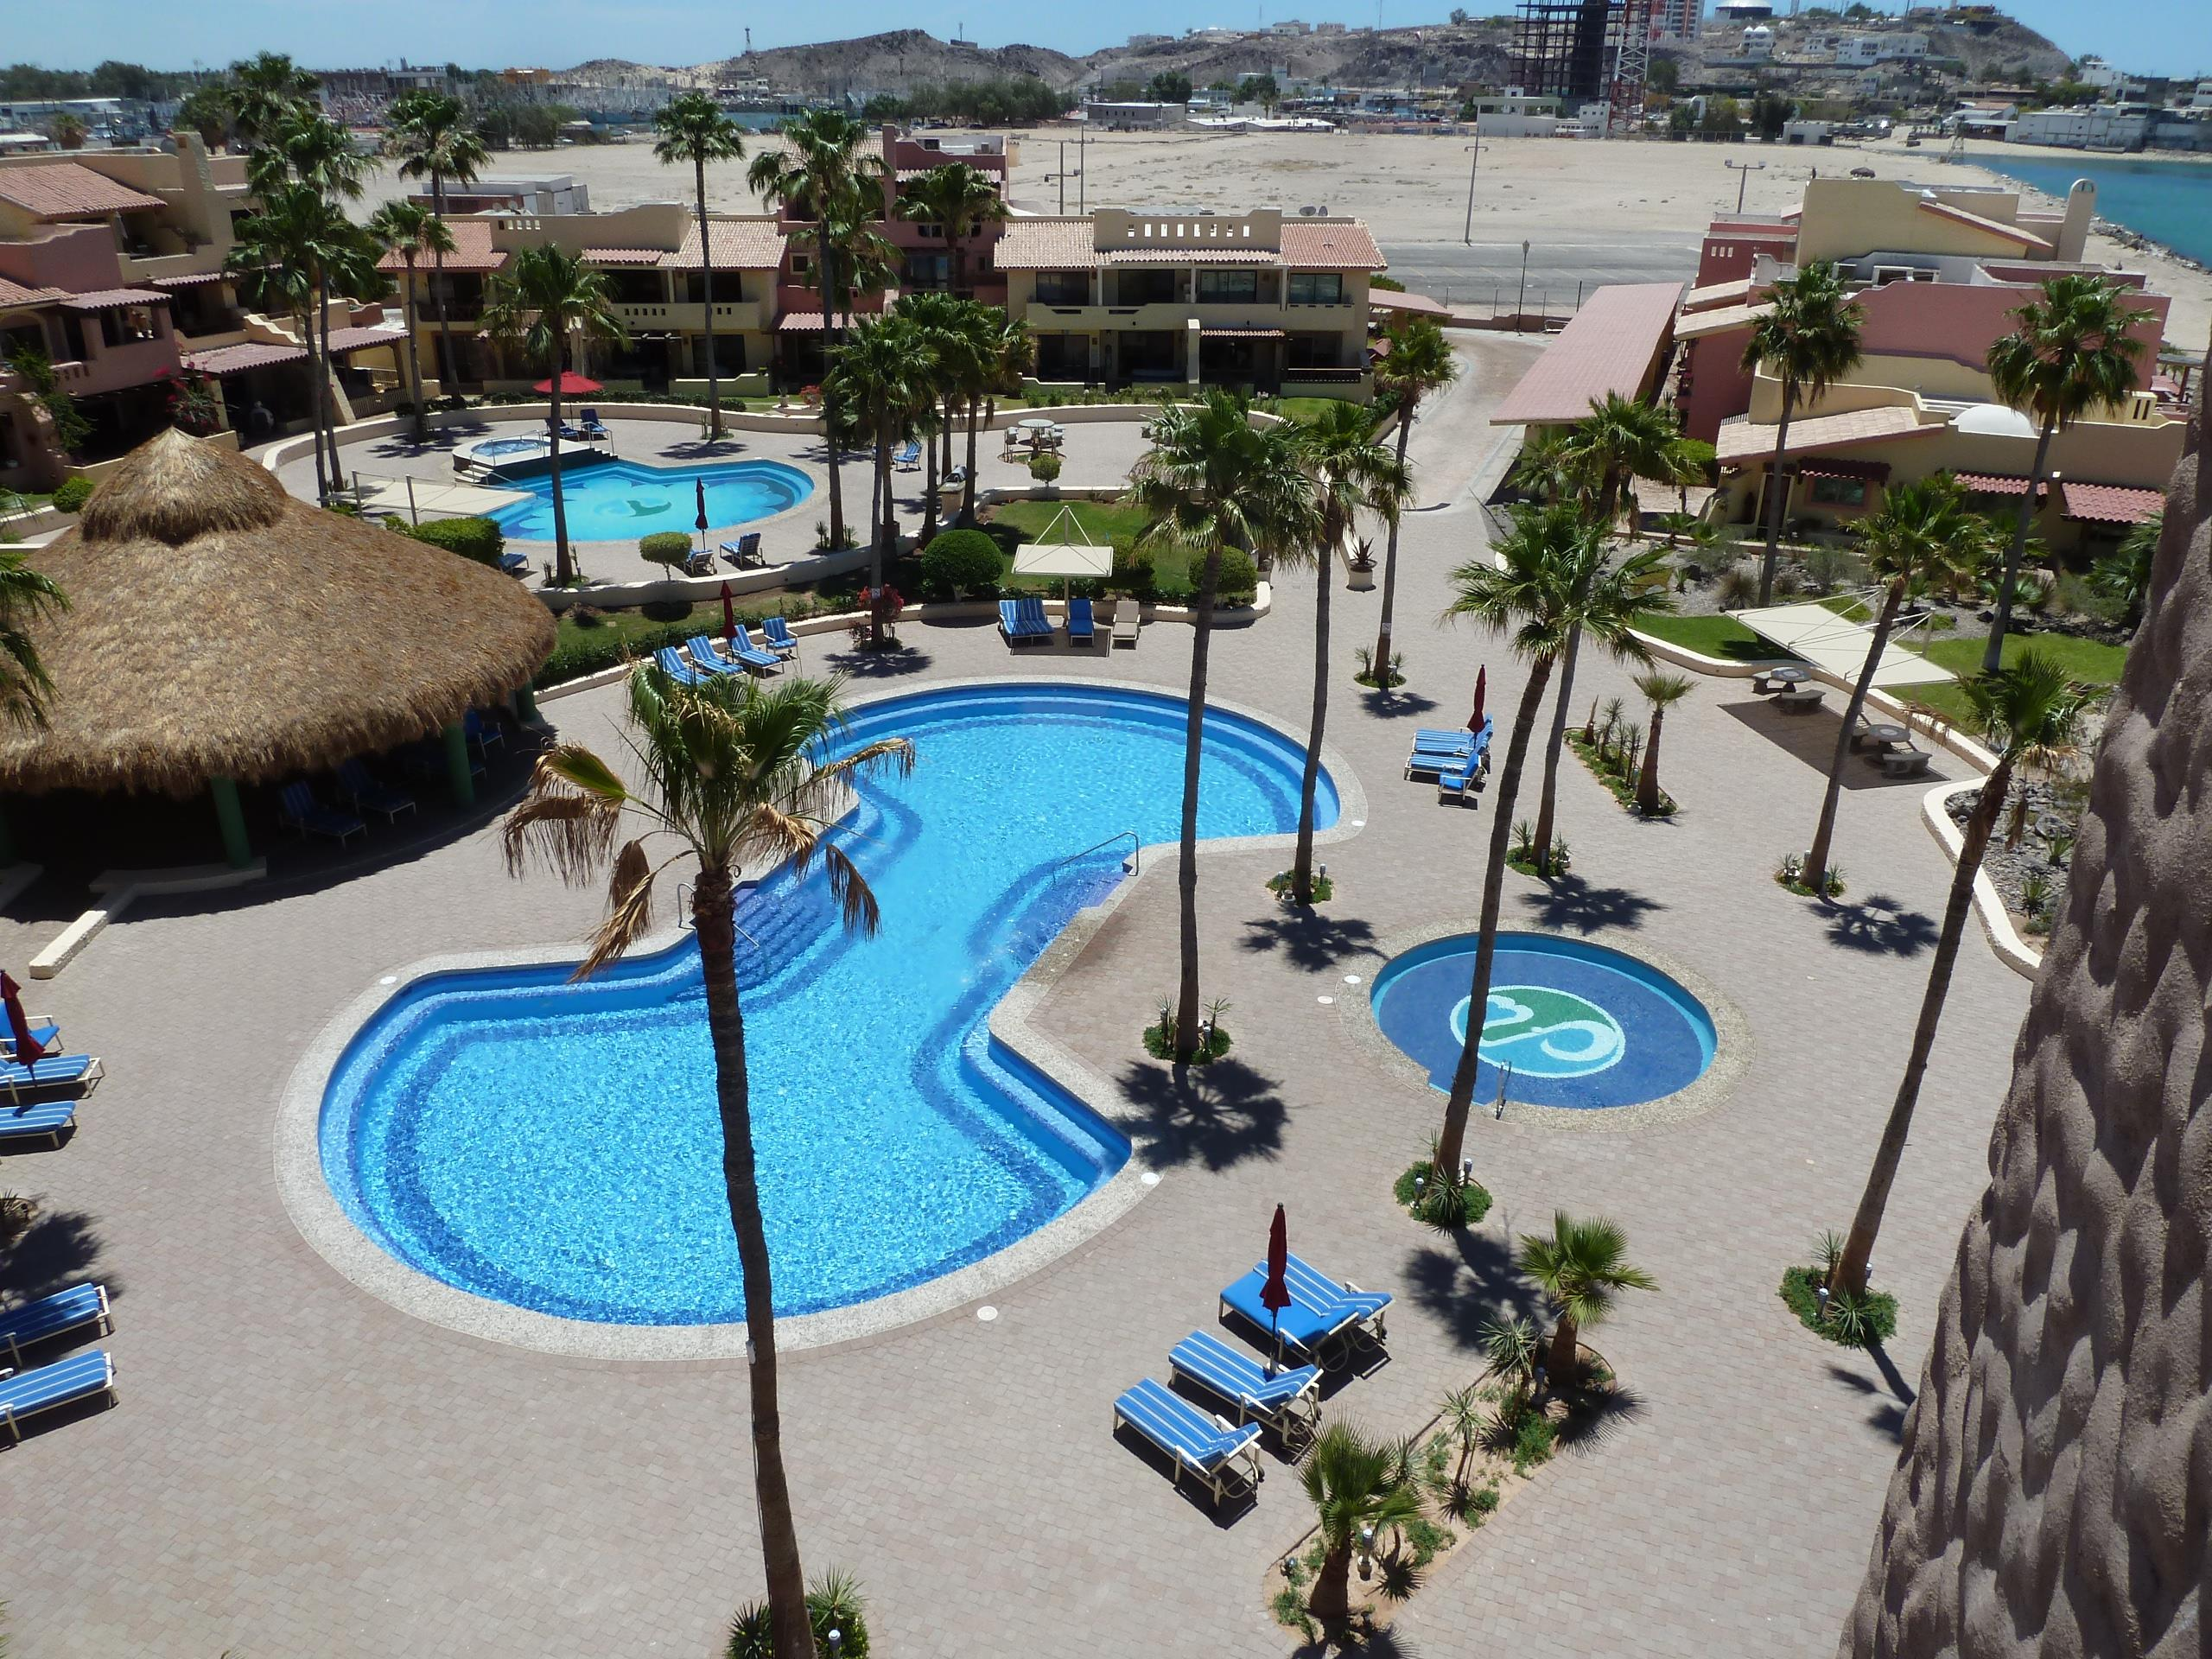 PINACATE CONDO PHOTOS Rocky Point Real Estate - John Walz - Realtor